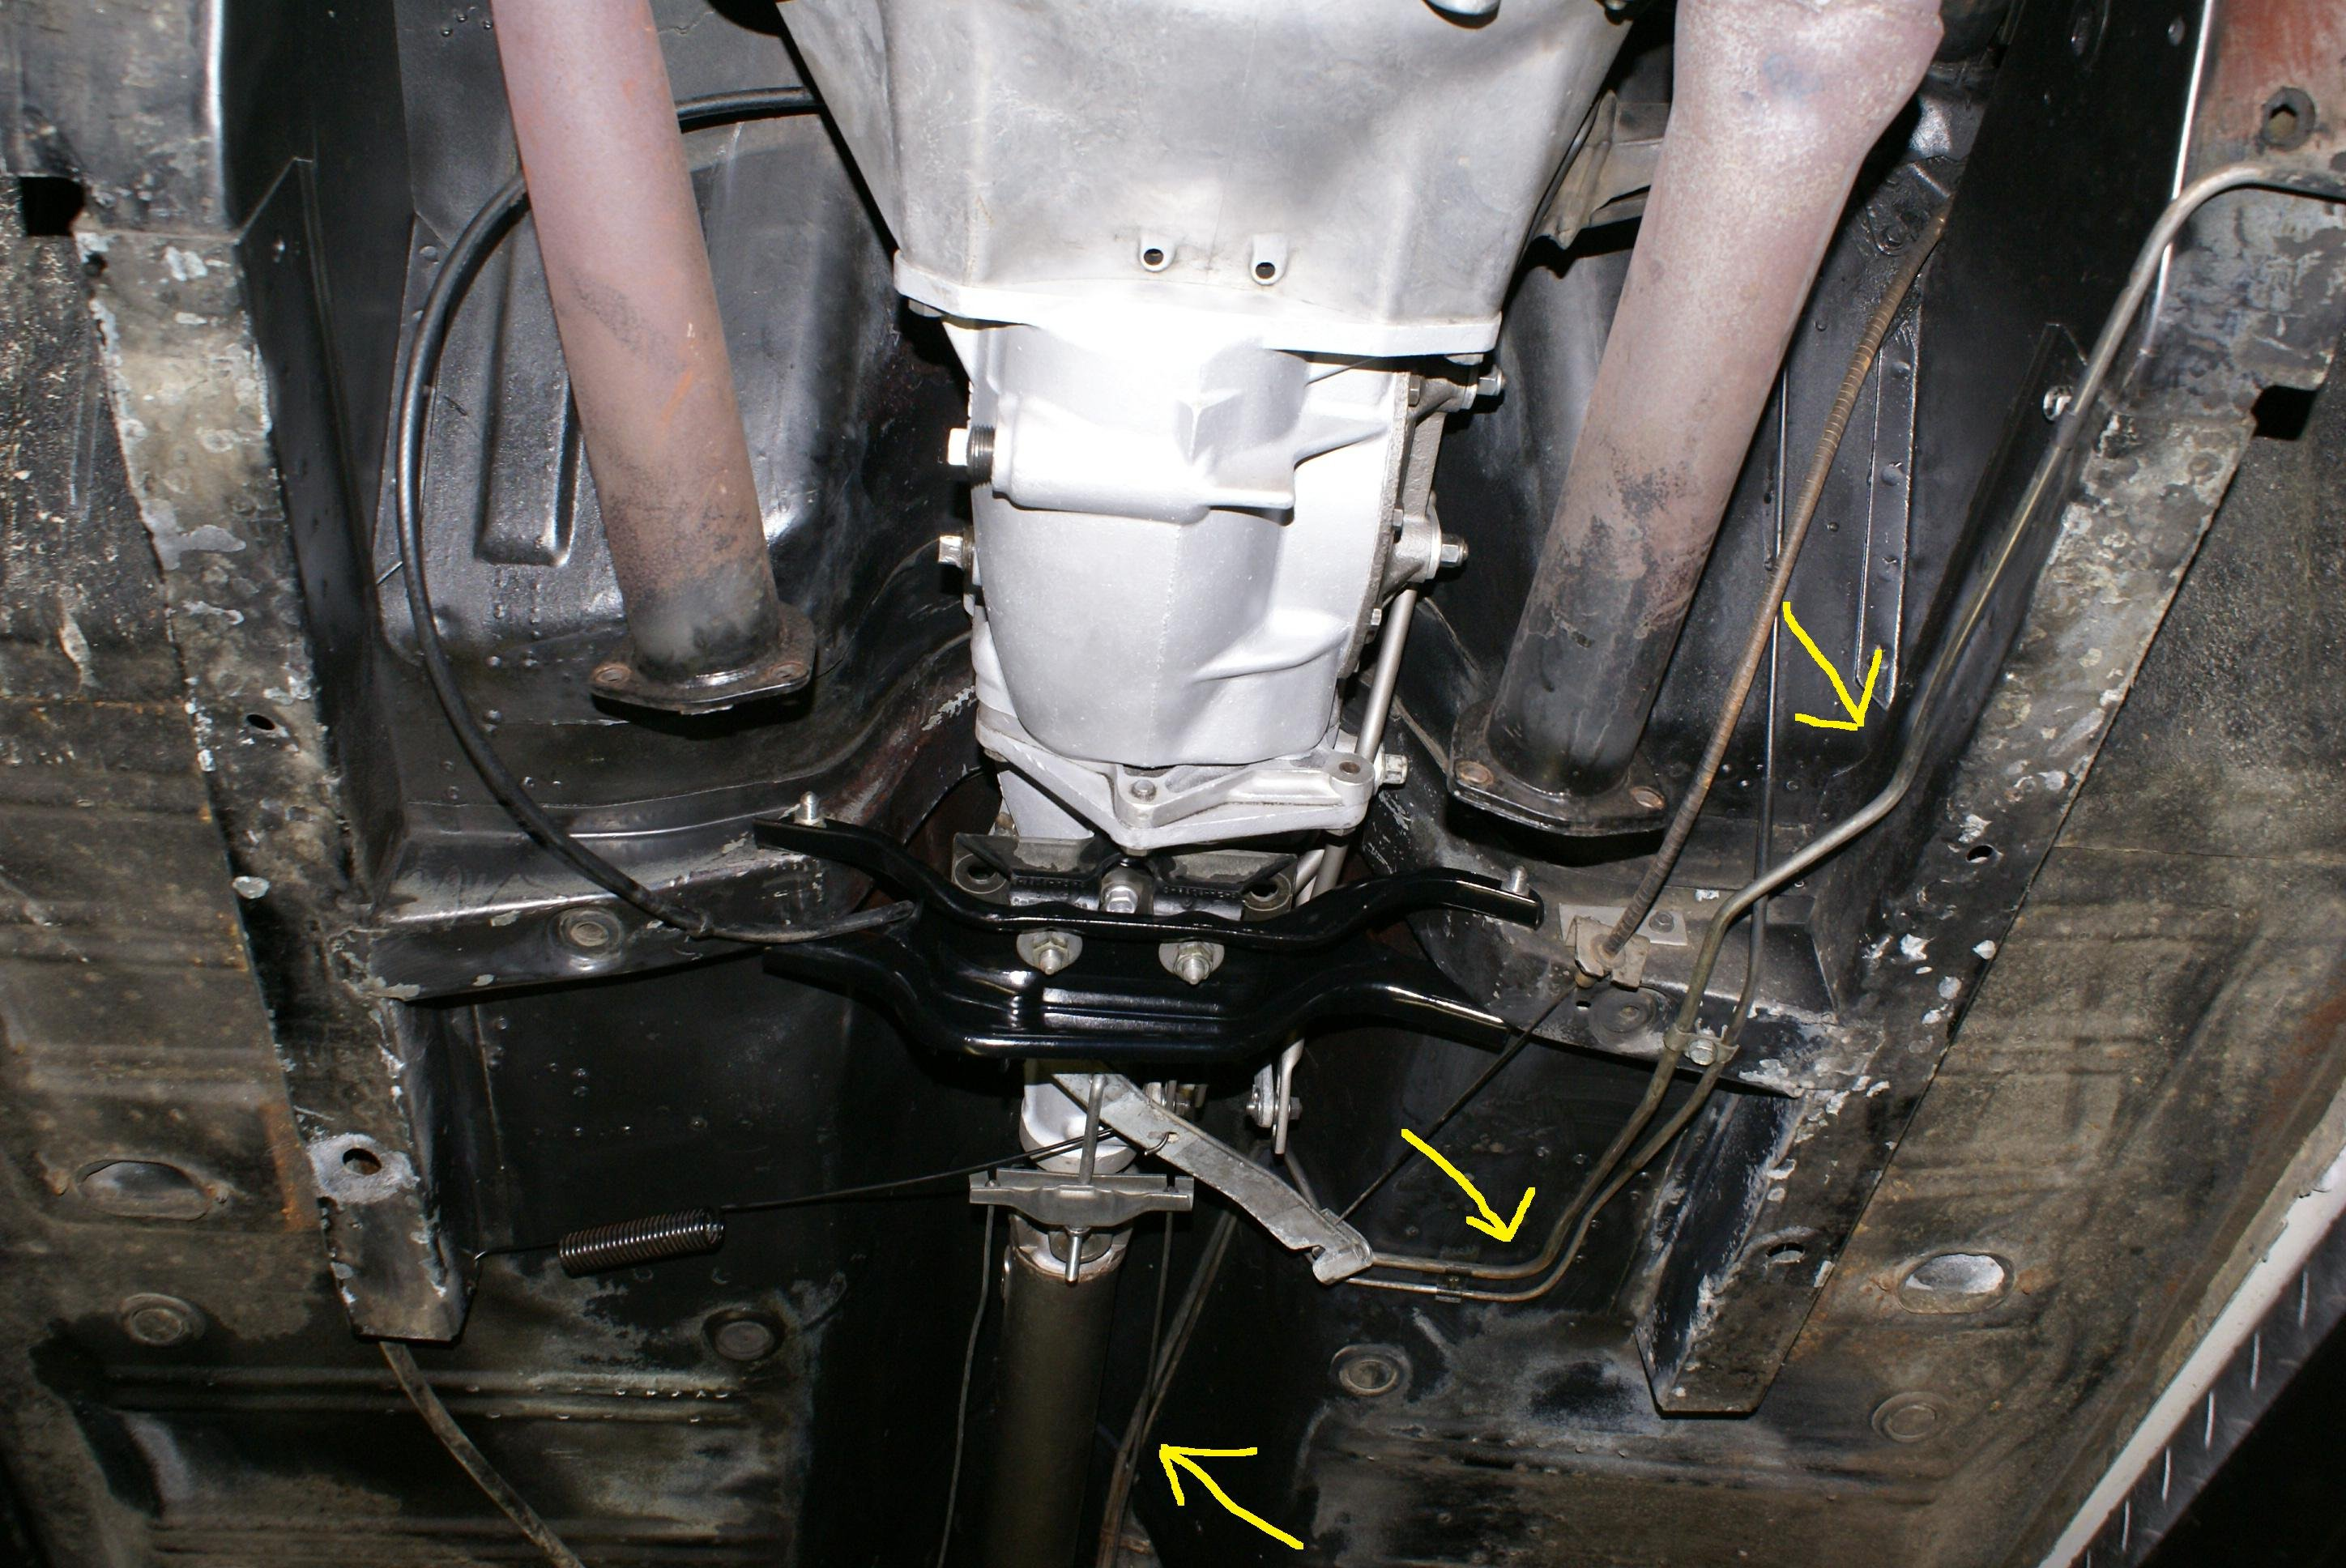 D Mustang V Fuel Line Routing Help Fuel Line on Early Bronco Rear Brake Diagram